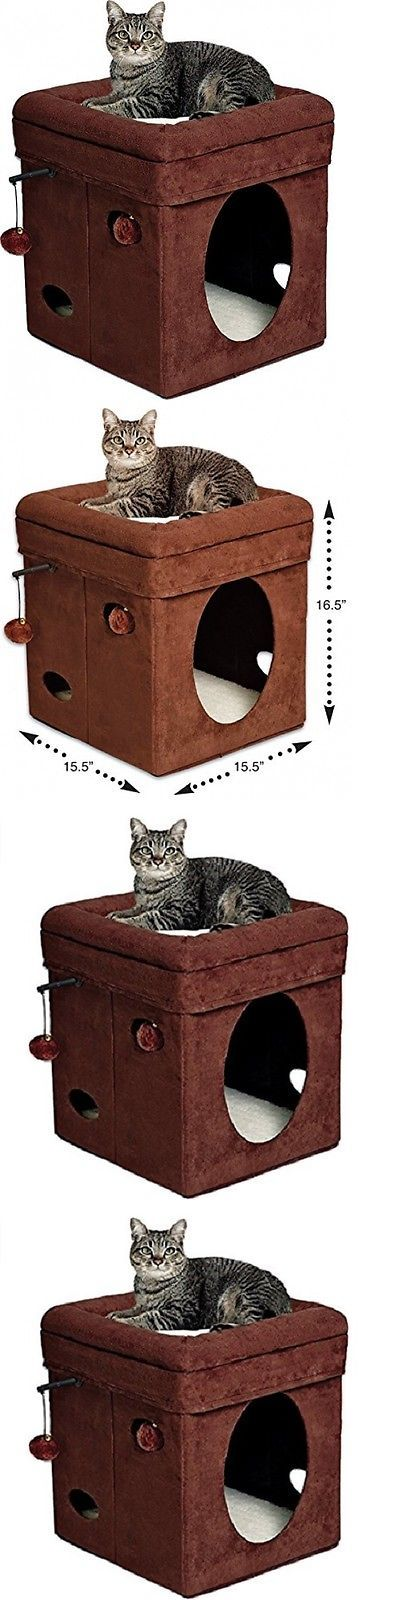 Furniture and Scratchers 20740: Curious Cat Cube House Condo Home Kitty Furniture Scratcher Play Toy Game Cats -> BUY IT NOW ONLY: $30.75 on eBay!